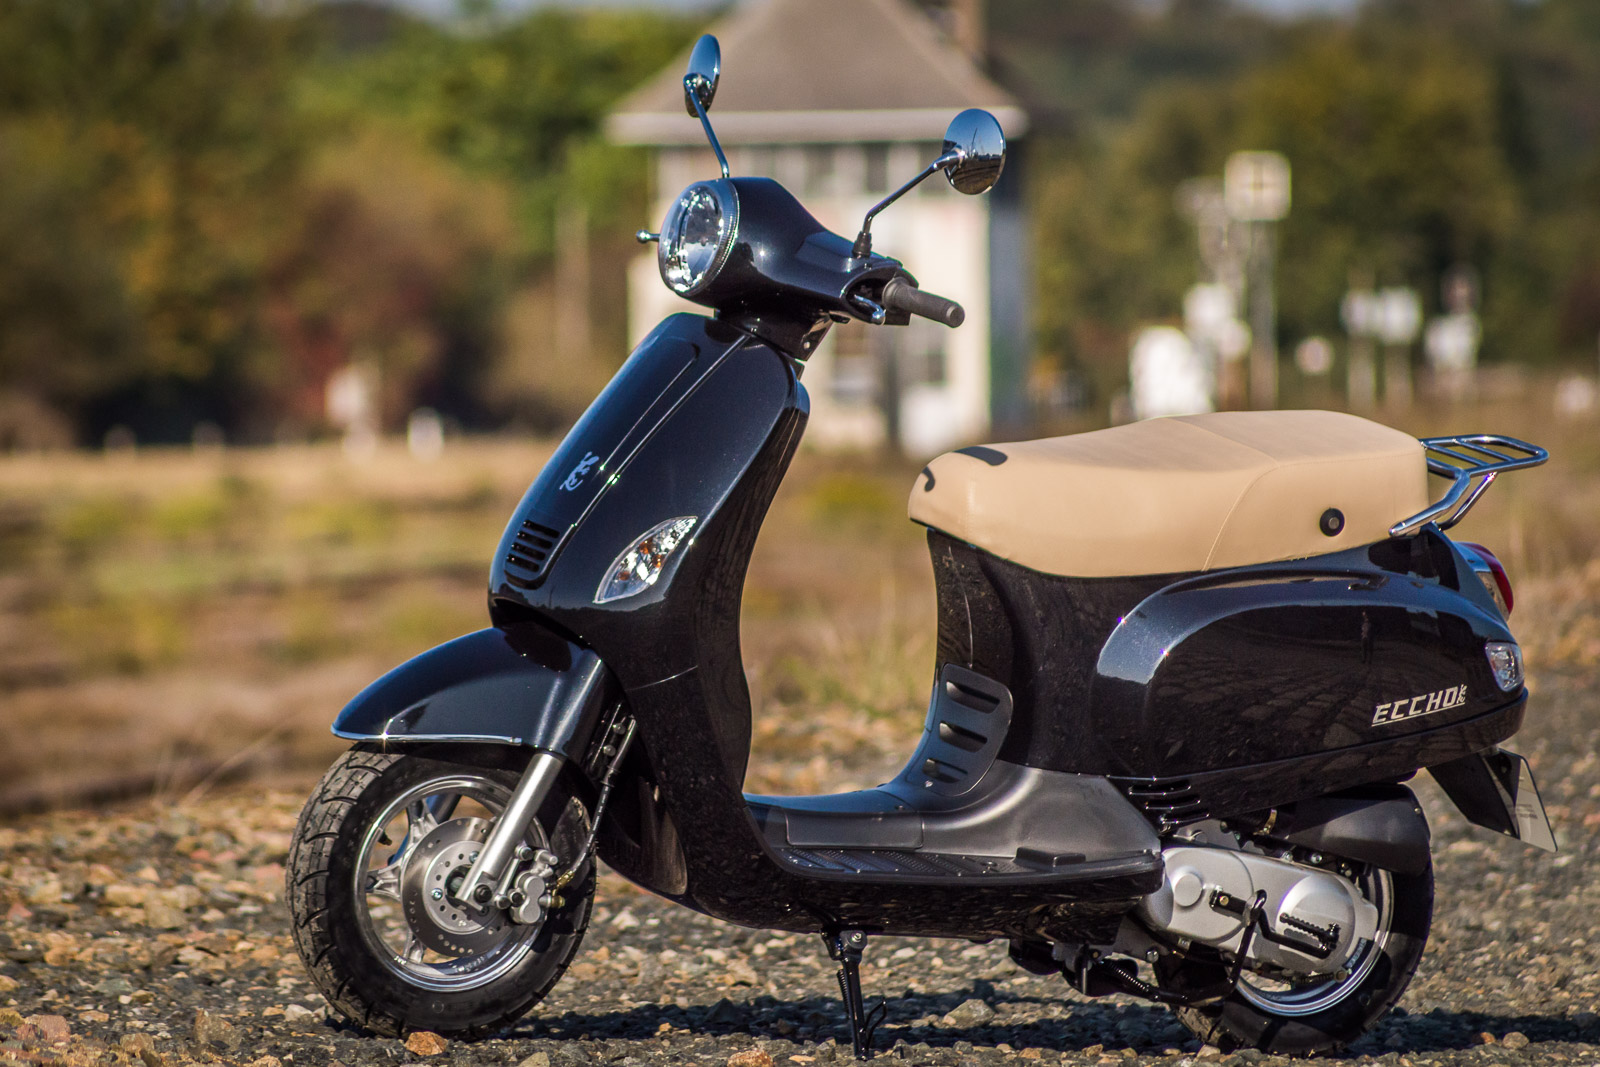 SCOOTER-50-ECCHO-VPX-06